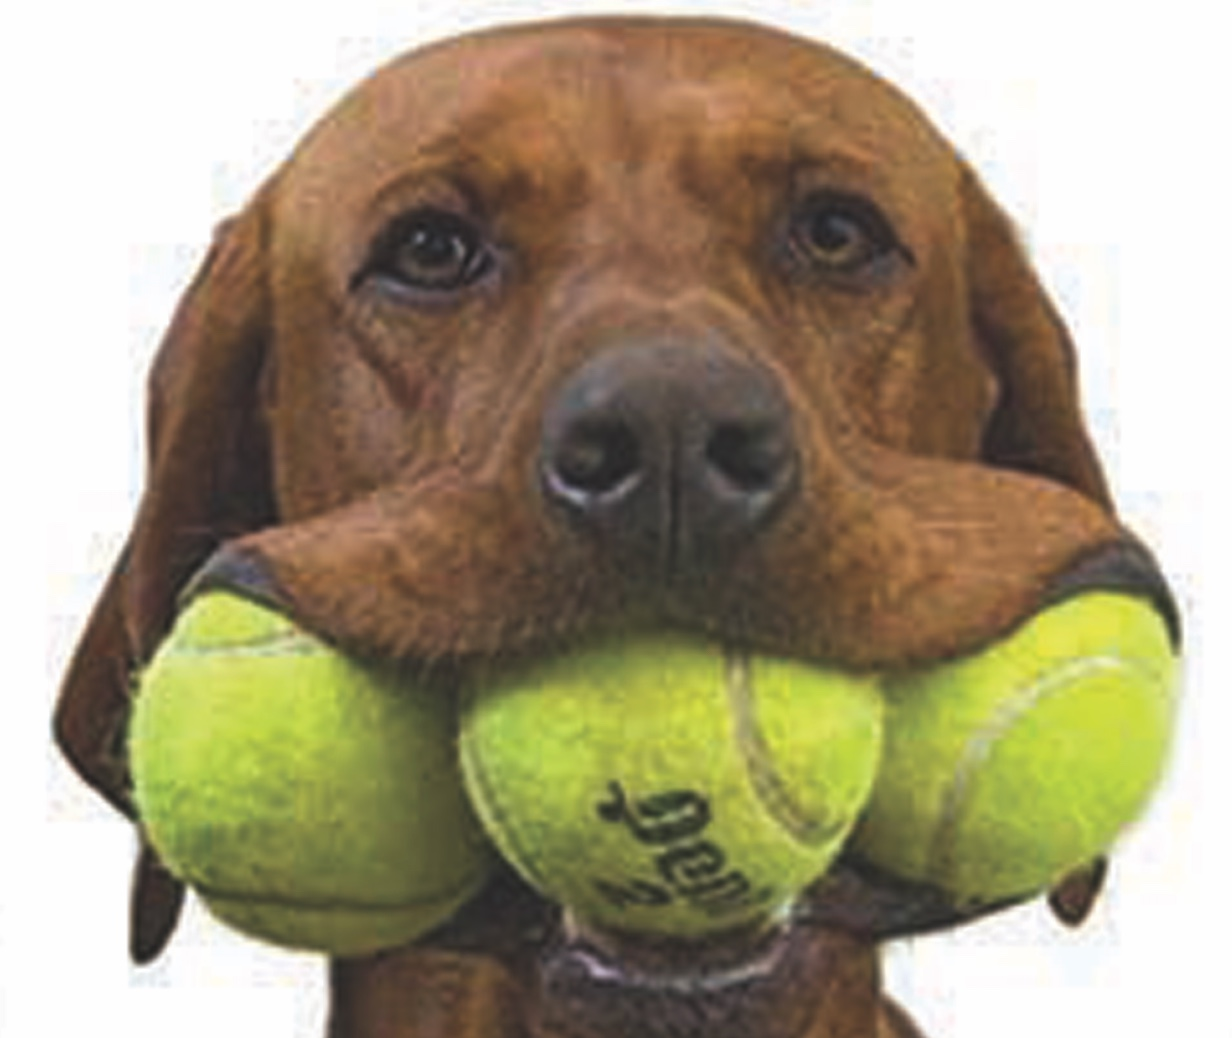 Boca Grande Club Hosts Party To Save Animal Lives The Tennis Ball